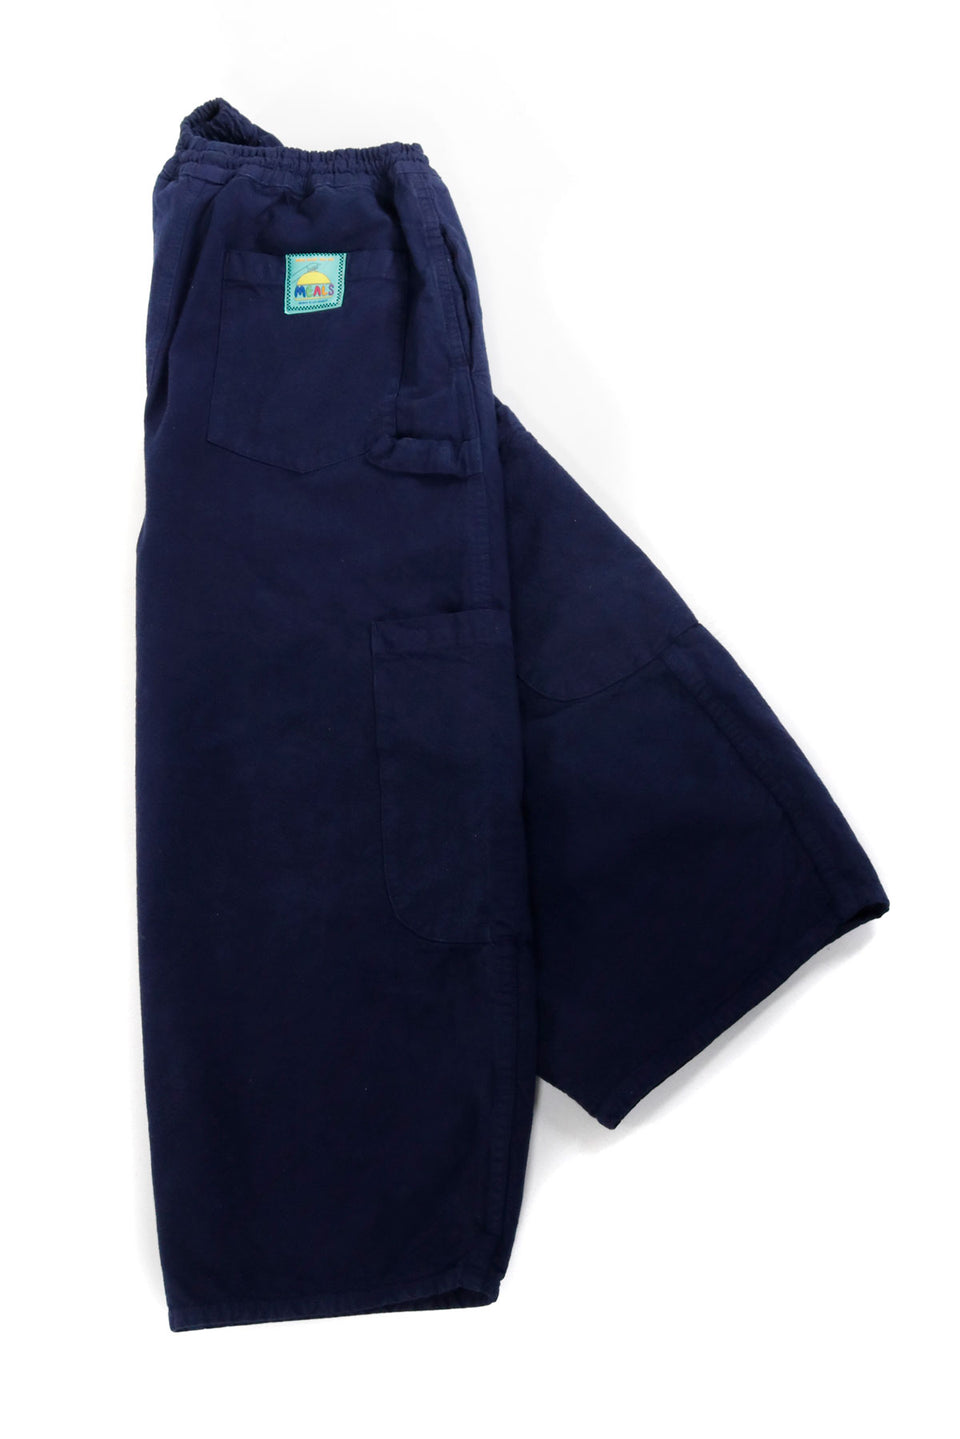 #1 Blueberry Chef Pant